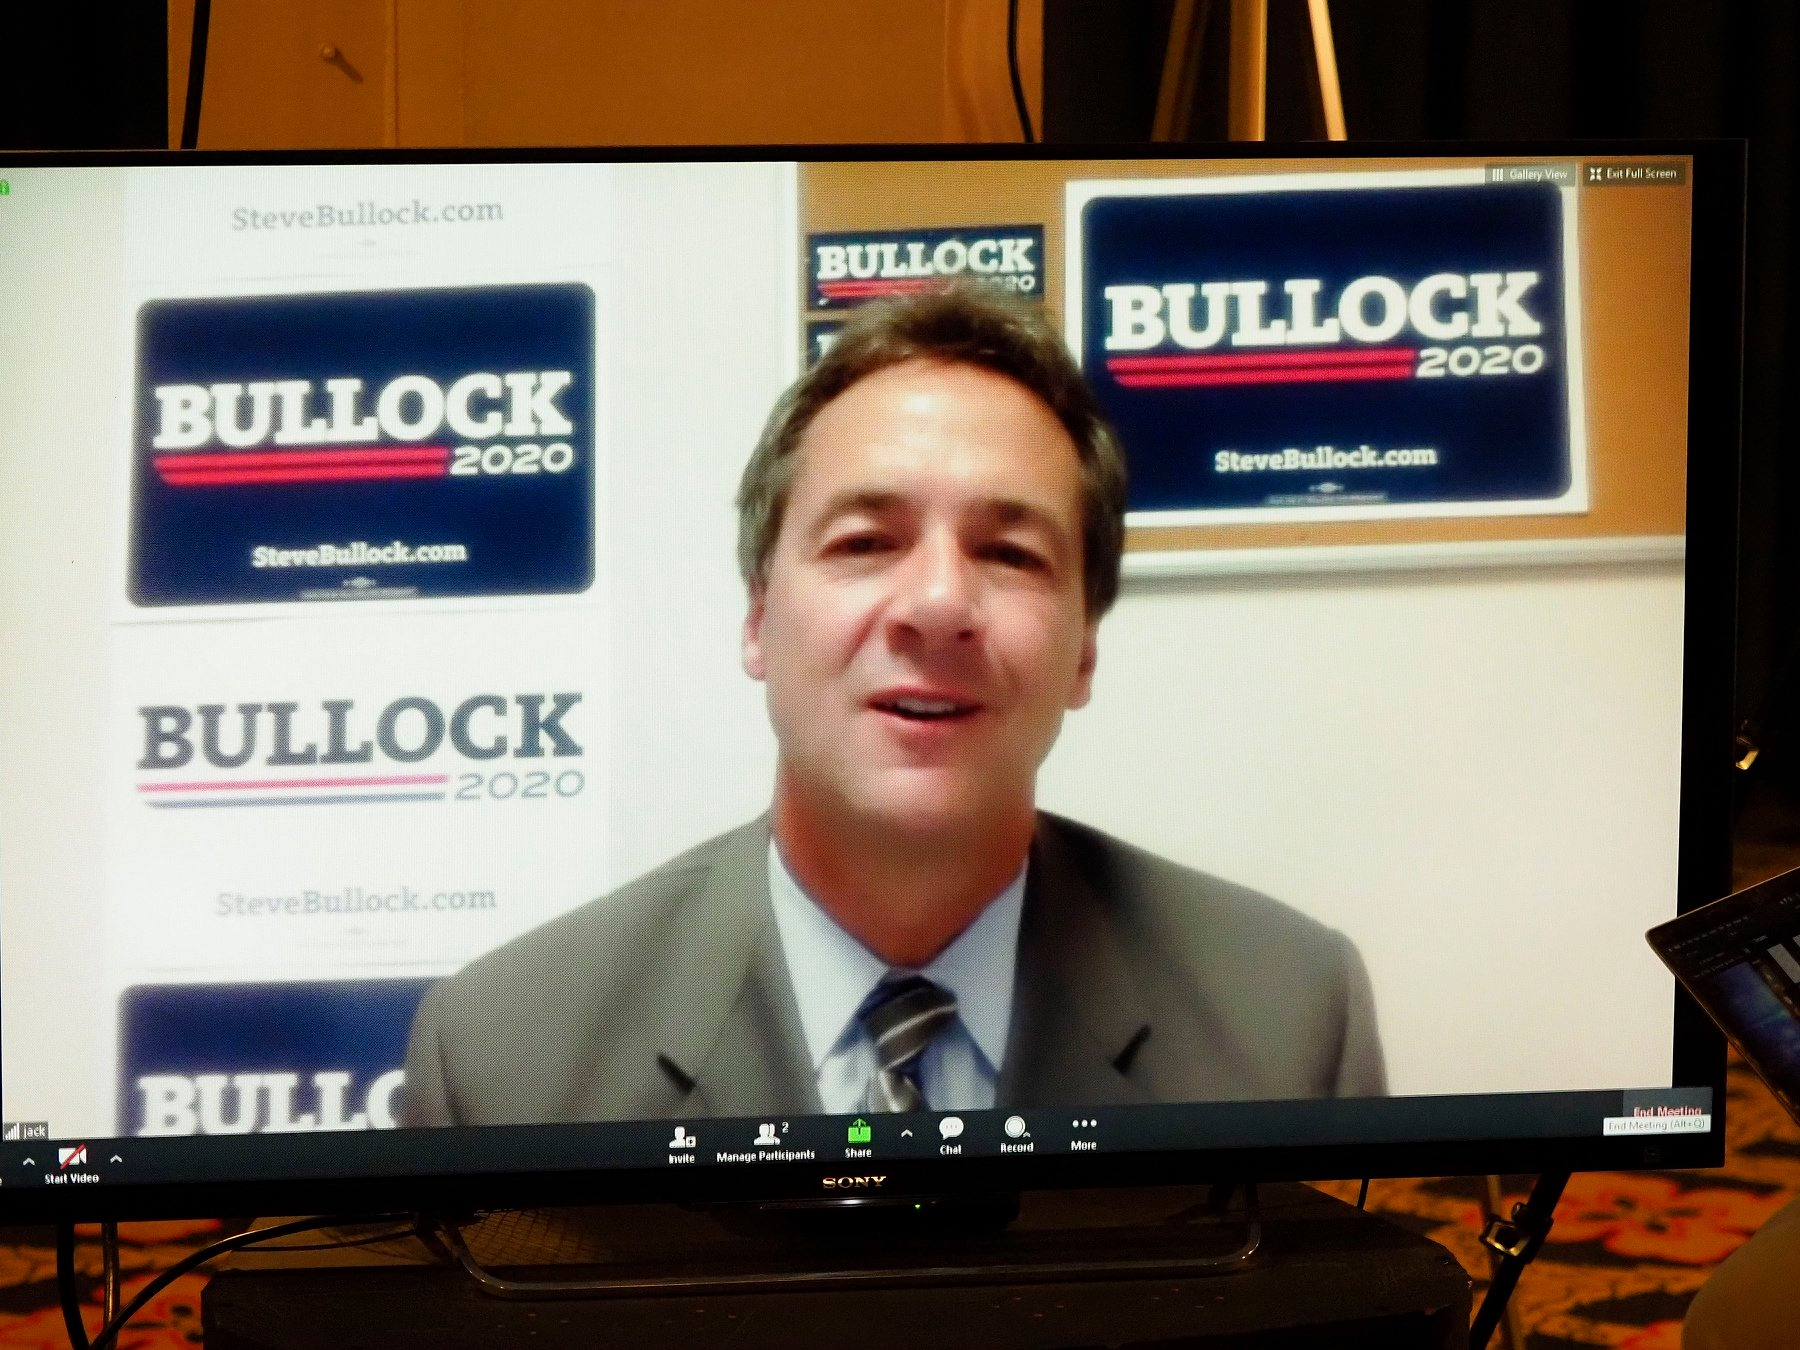 AUDIO/VIDEO: Steve Bullock at Frank LaMere Native American Presidential Forum